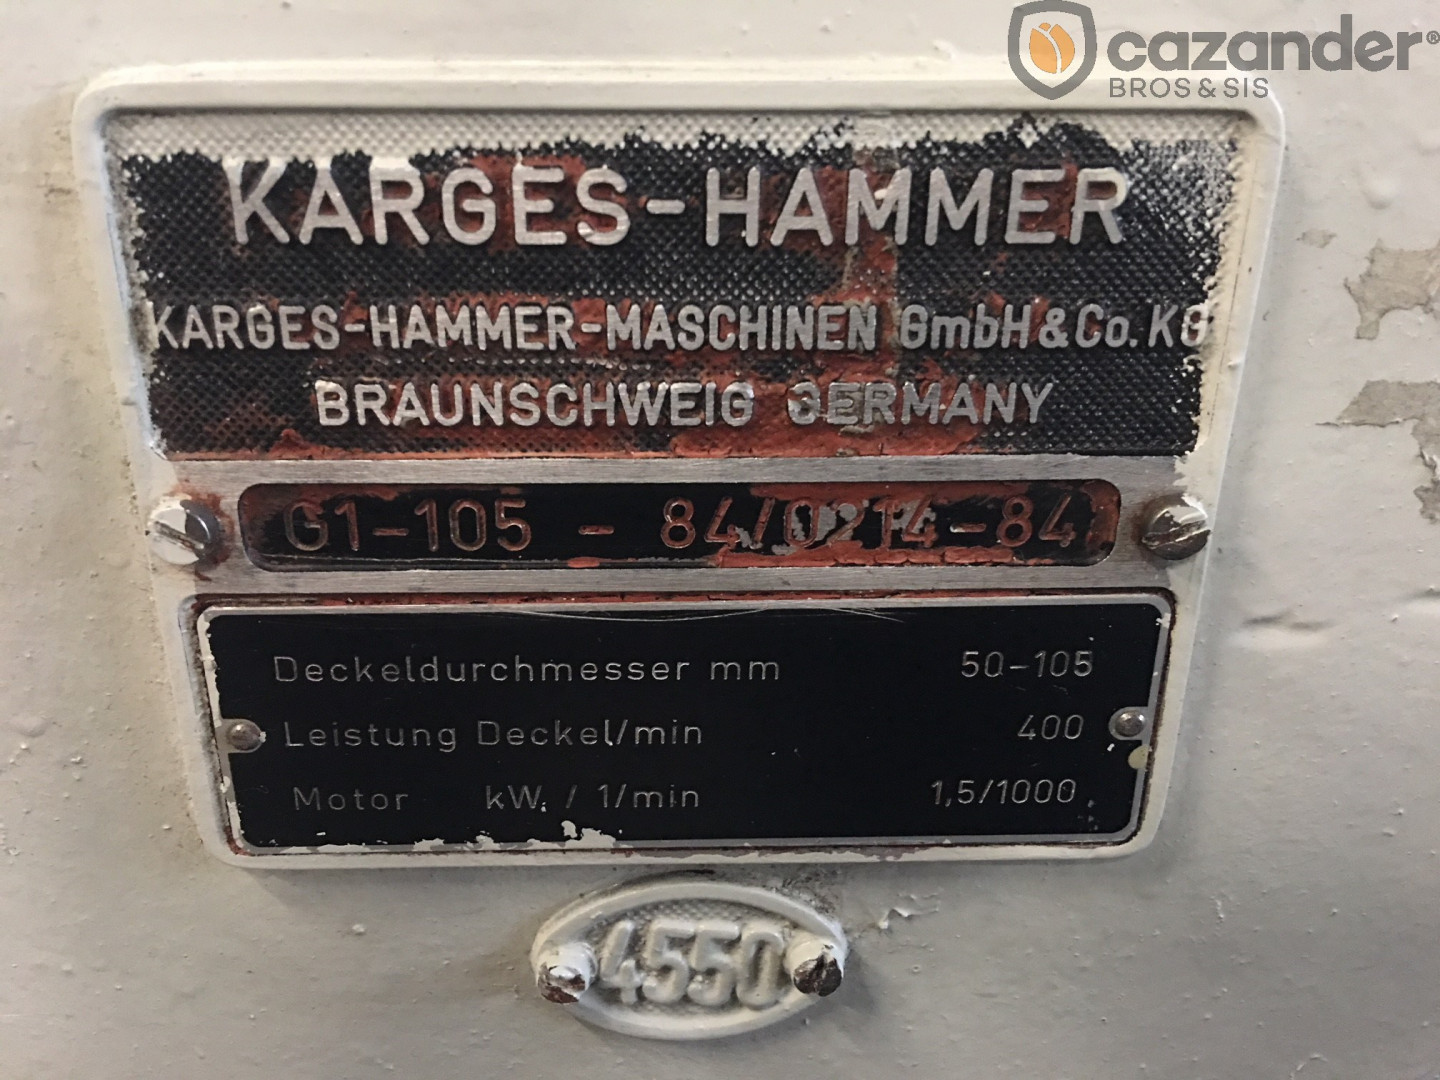 Karges Hammer G1-105 jointeuse